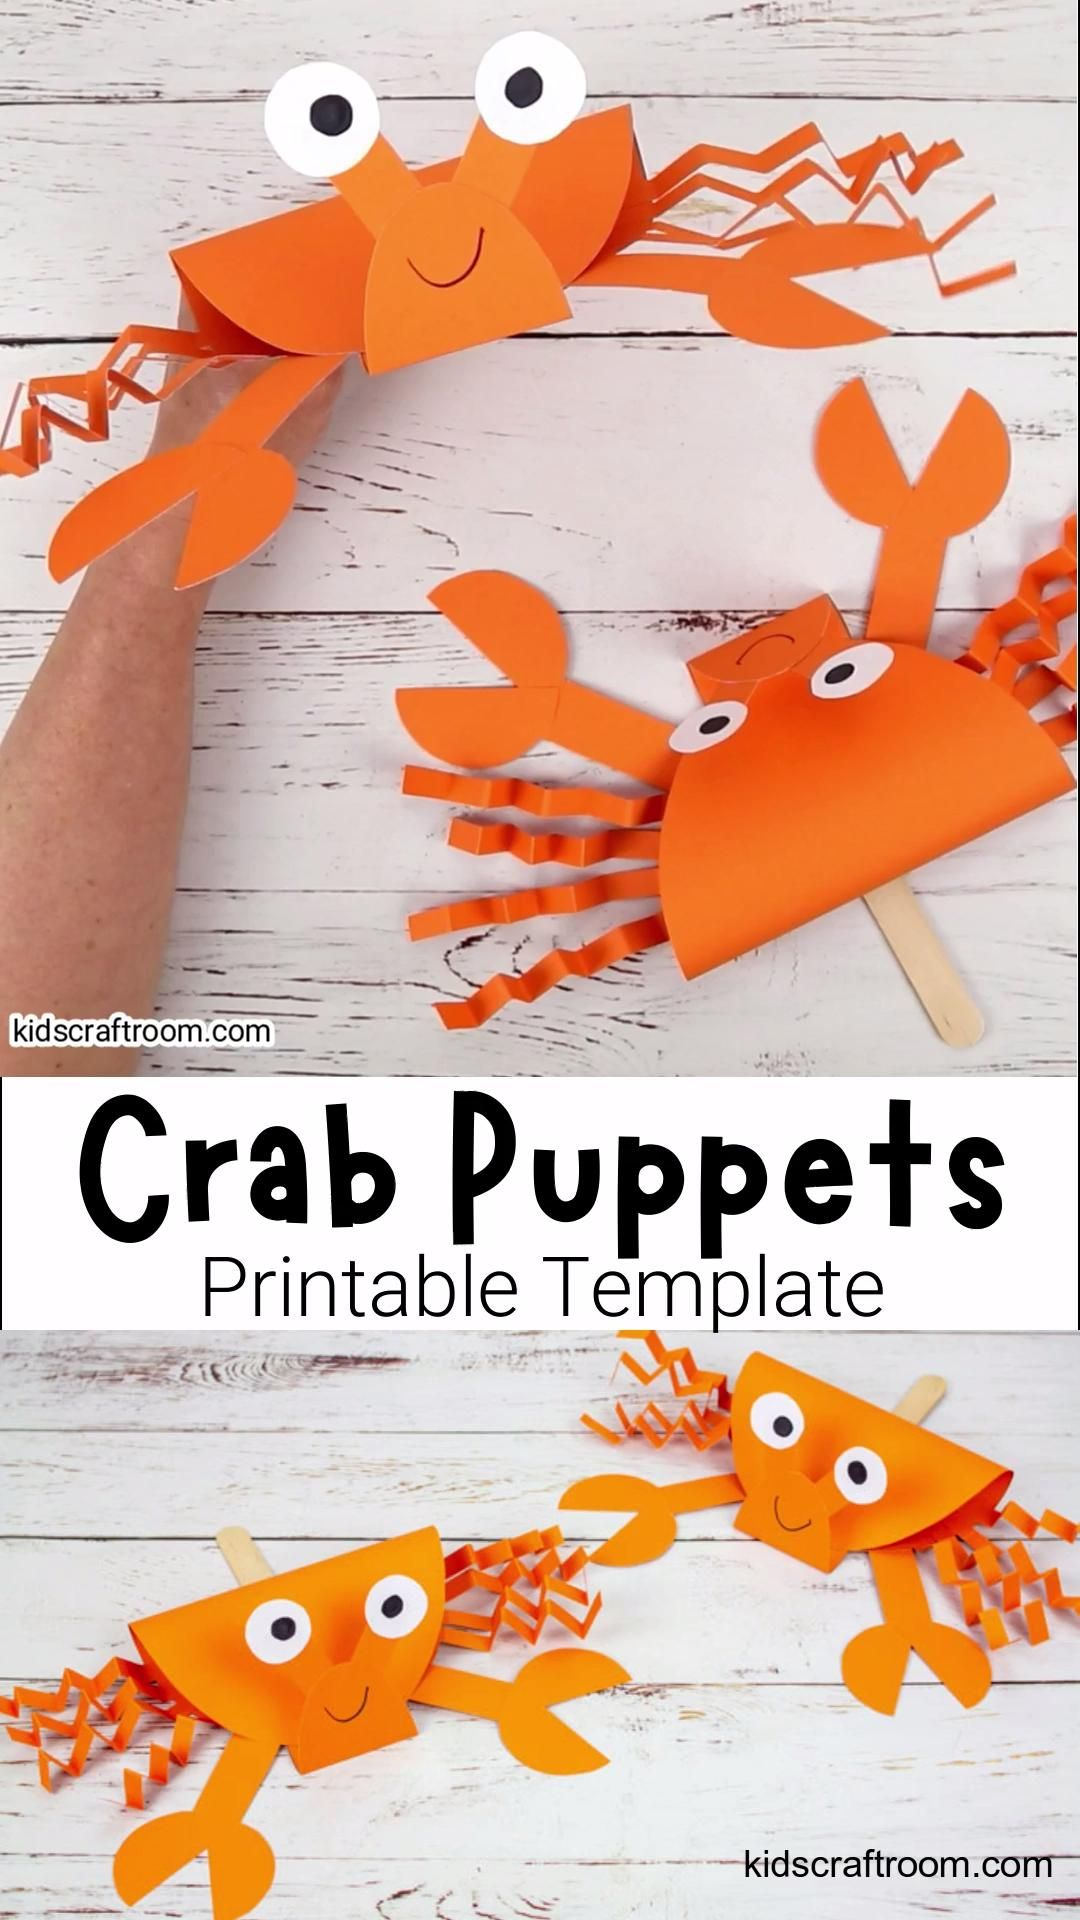 Adorable Crab Puppets